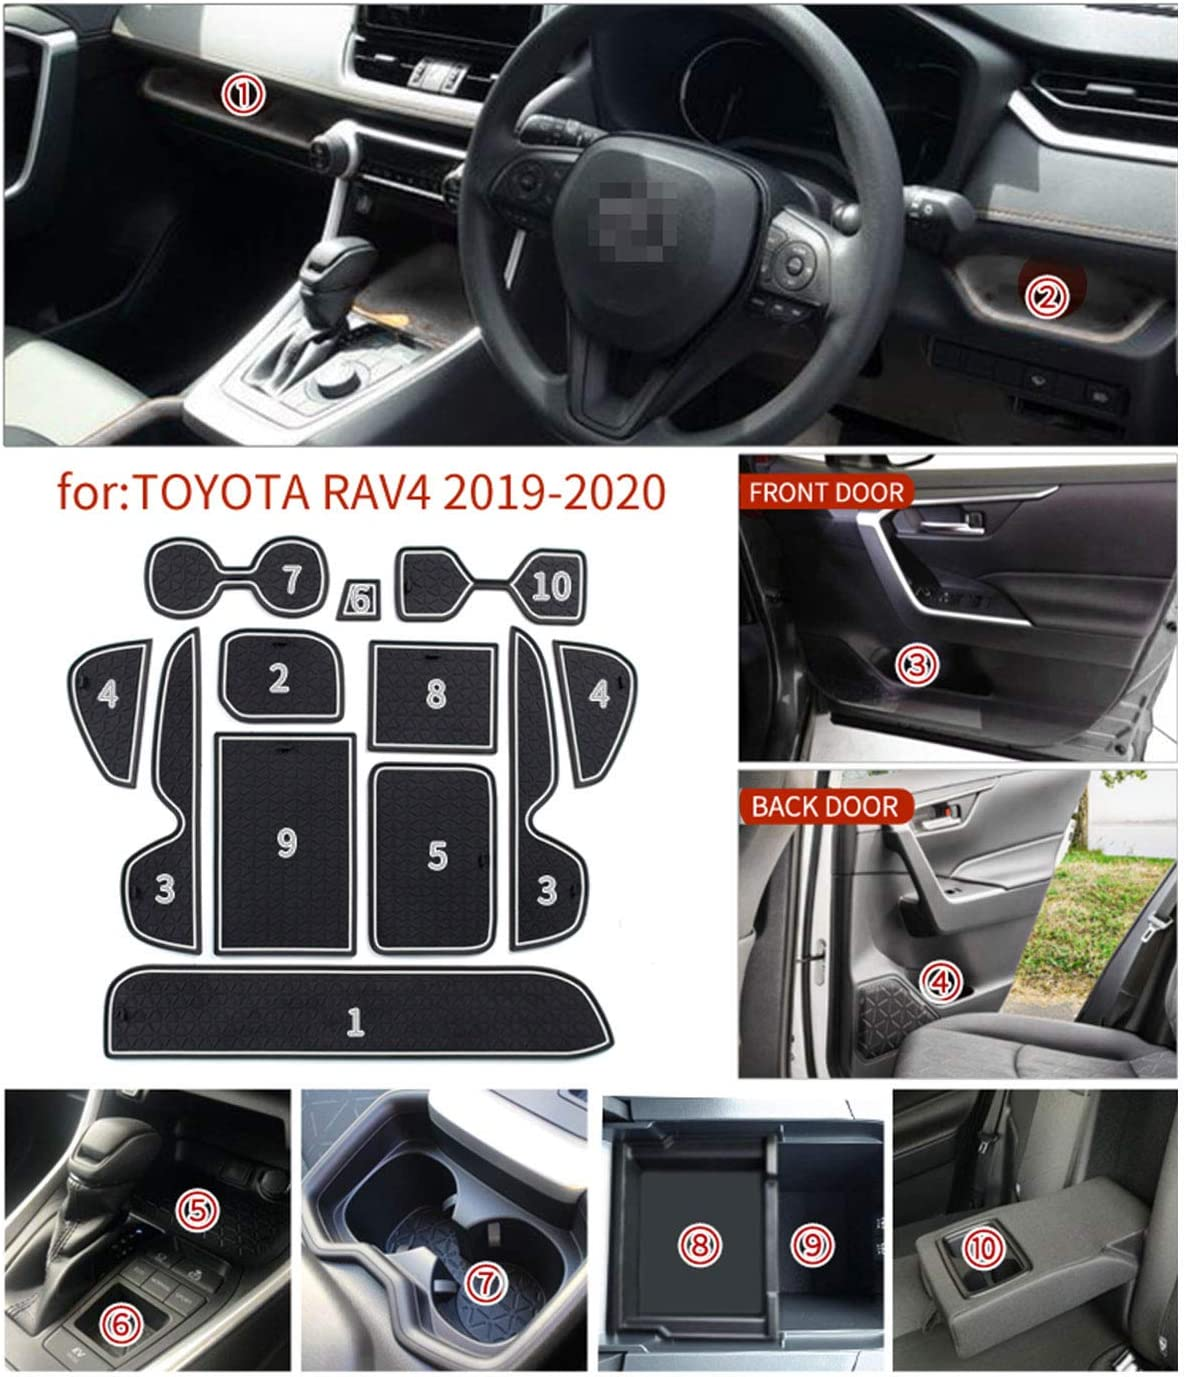 Carsio Black Rubber Tailored Car Floor Mats To fit BMW Z4 E89 Convertible 2010 to 2016 3mm 2pc Set